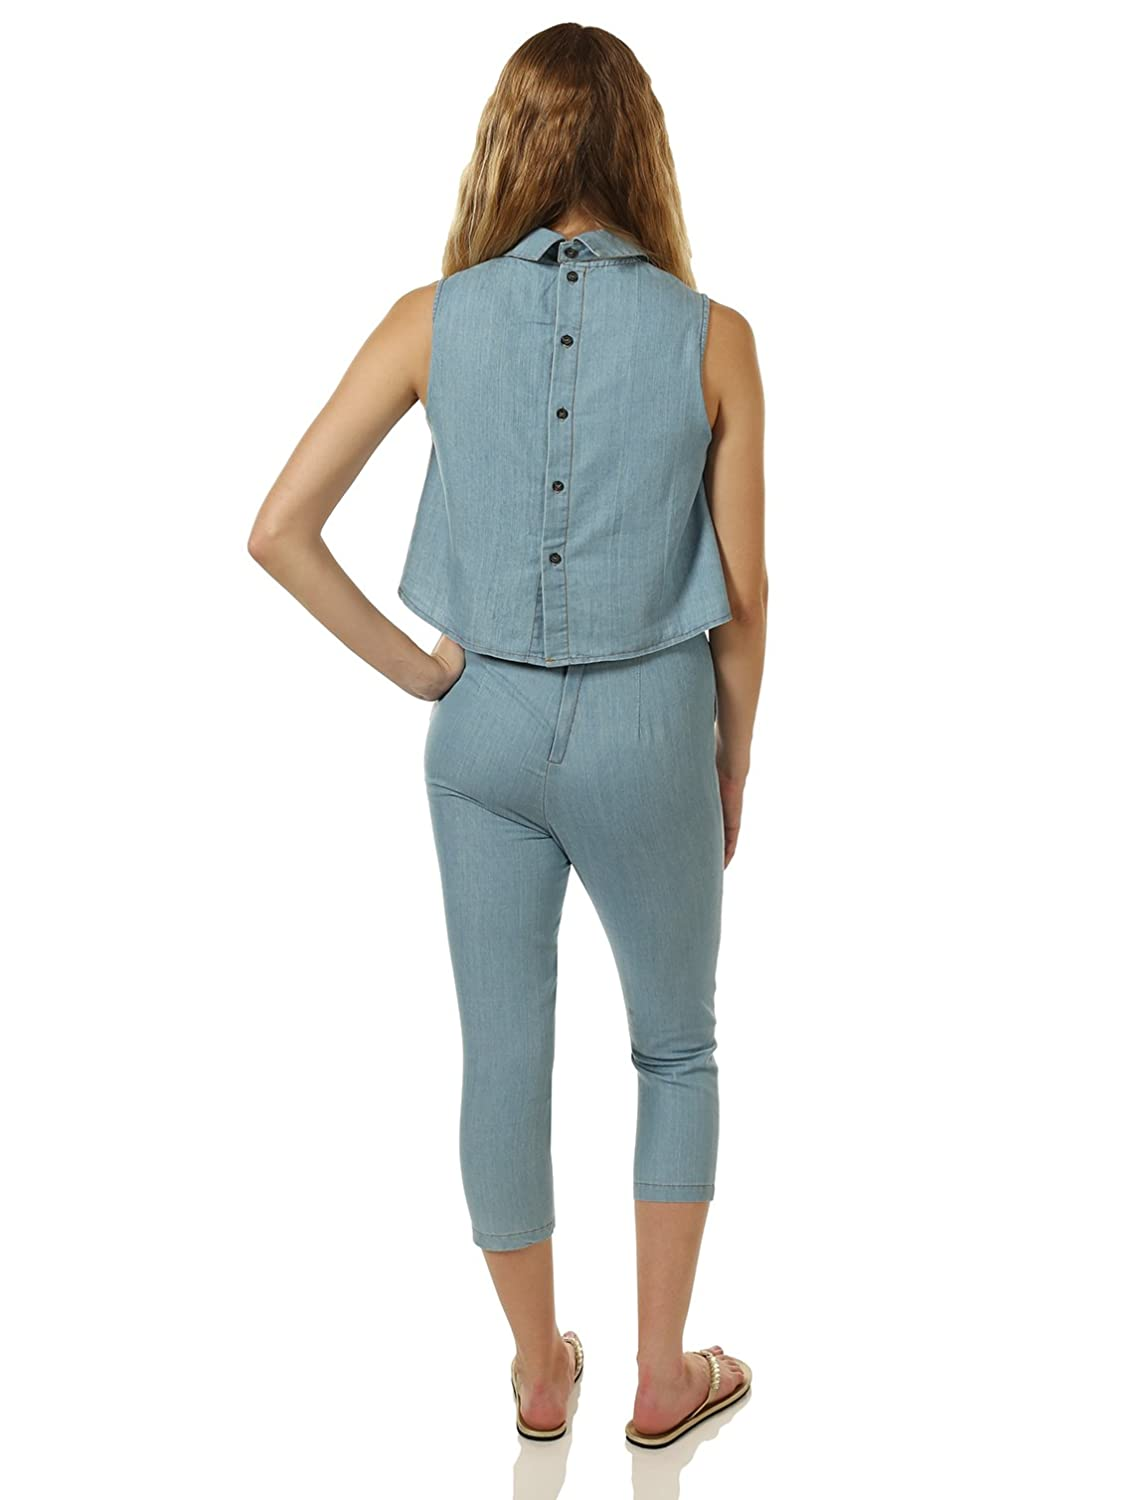 a83b3077258d Amazon.com  7Encounter Women s Open-Back Sleeveless Point Collar Capri  Jumpsuit Denim  Clothing